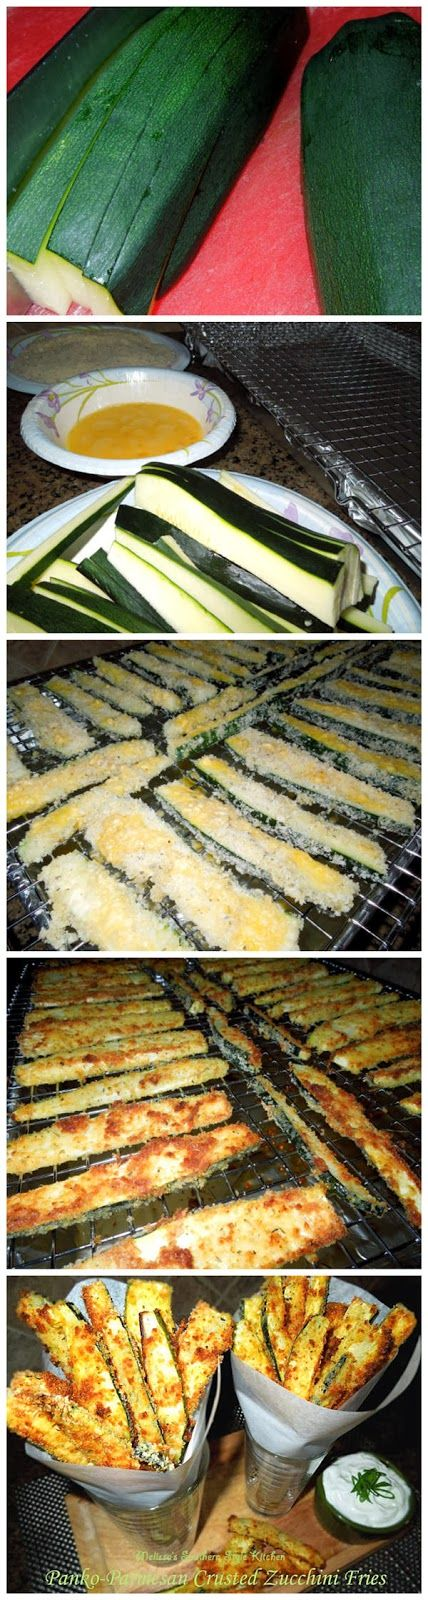 This Pin was discovered by Elaine Strickland. Discover (and save!) your own Pins on Pinterest. | See more about zucchini fries, zucchini and fries.